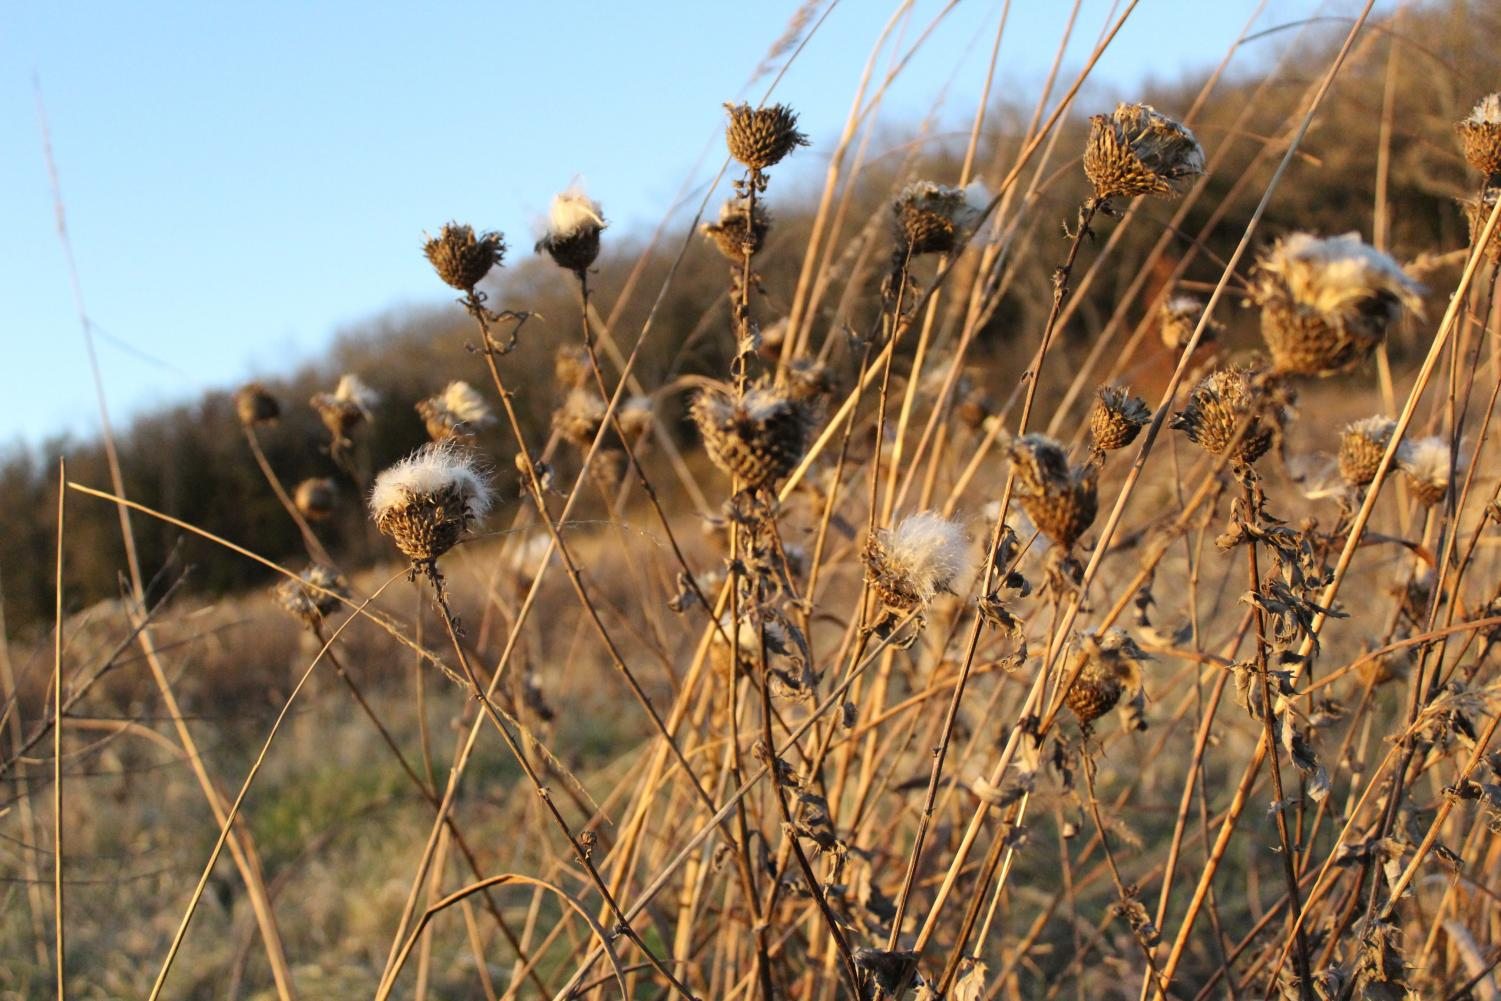 Anderson Prairie is full of plants in various stages of seeding as they prepare for winter.